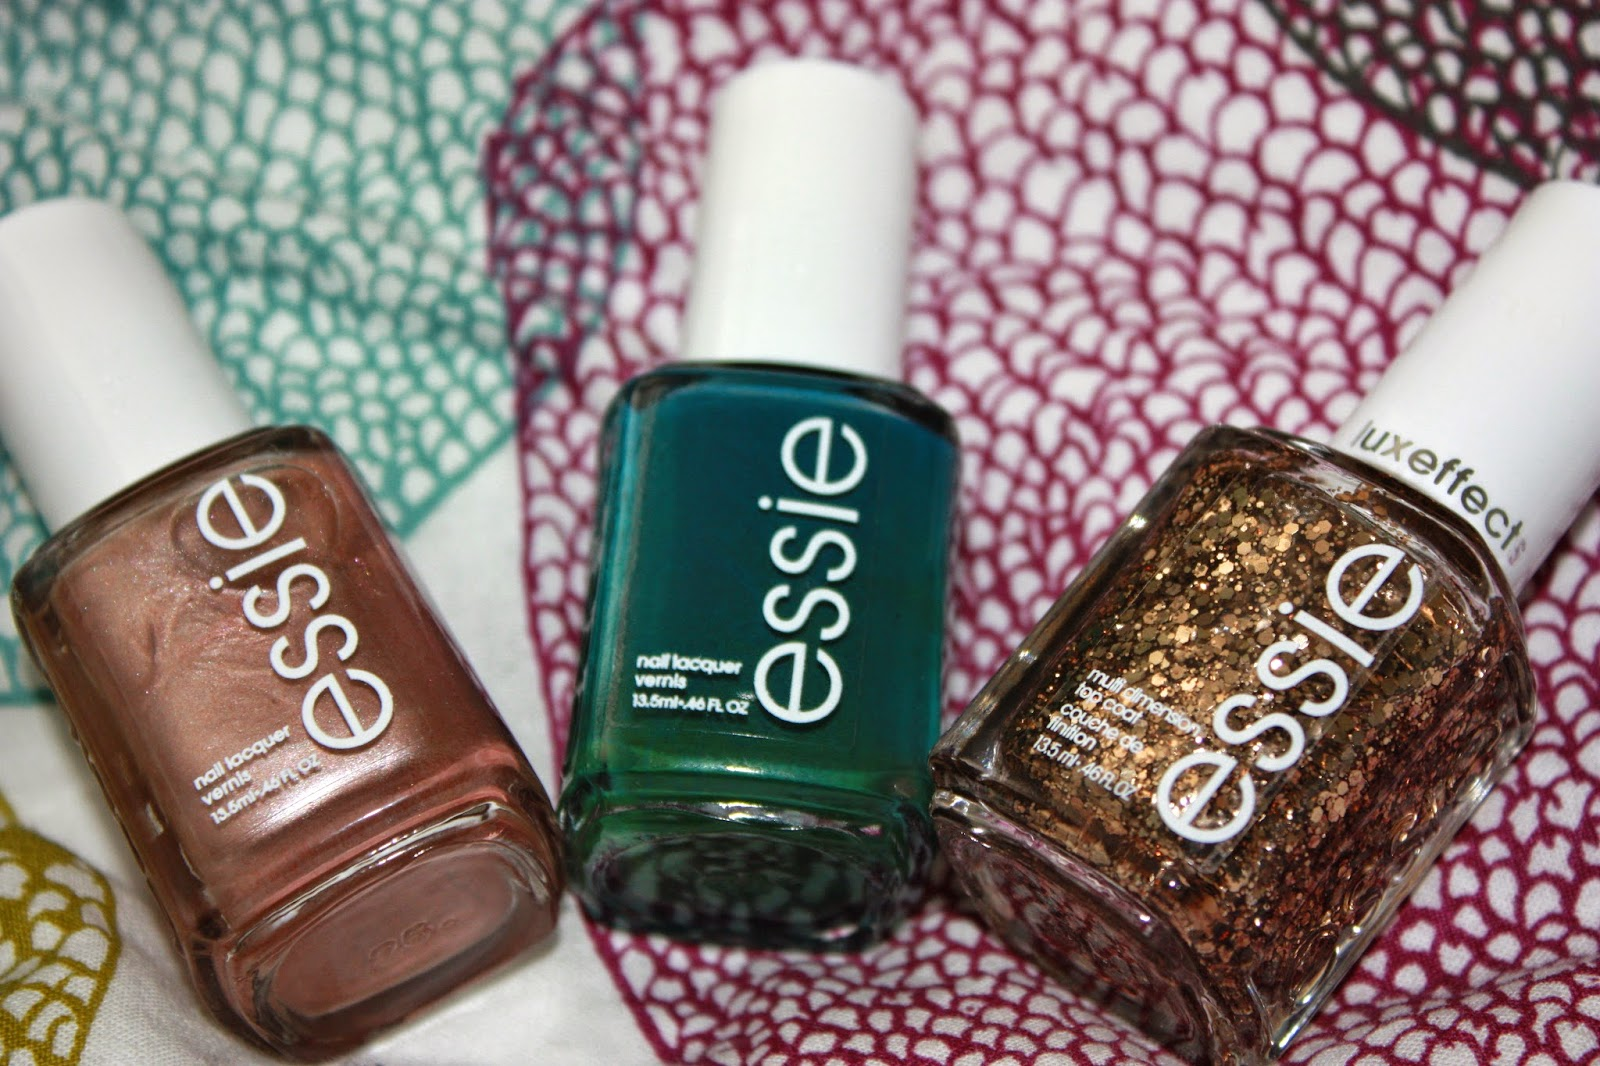 essie nail polish, go overboard, summit of style, buy me a cameo, nails